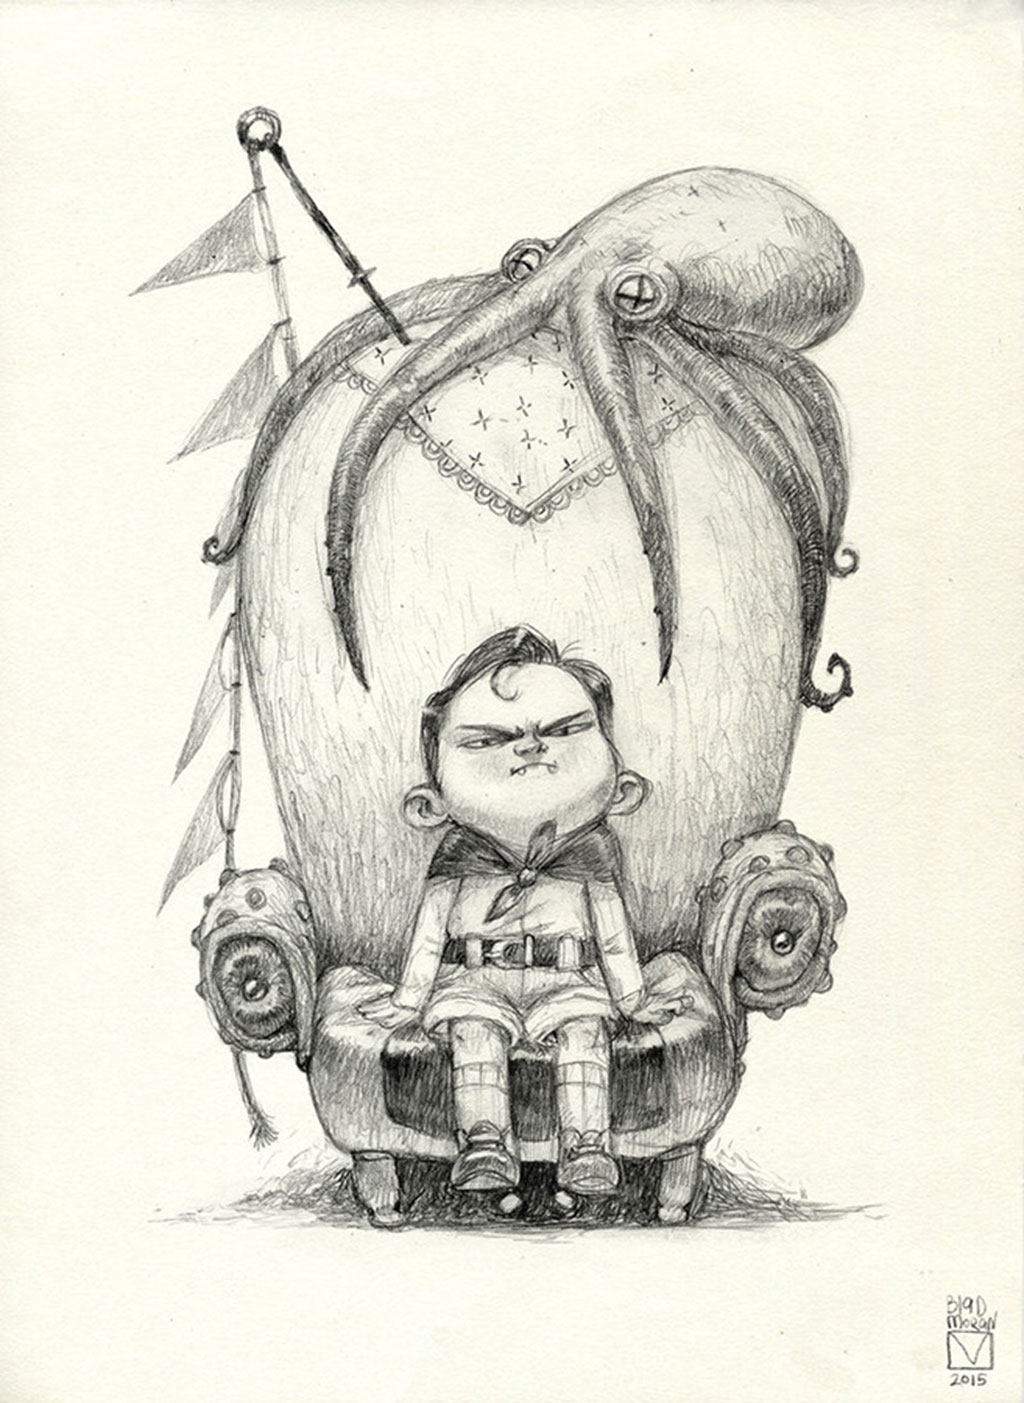 Drawing of Little Boy Character named Little Eddy Thunderbottom sitting on an oversized chair accompanied by an Octopus